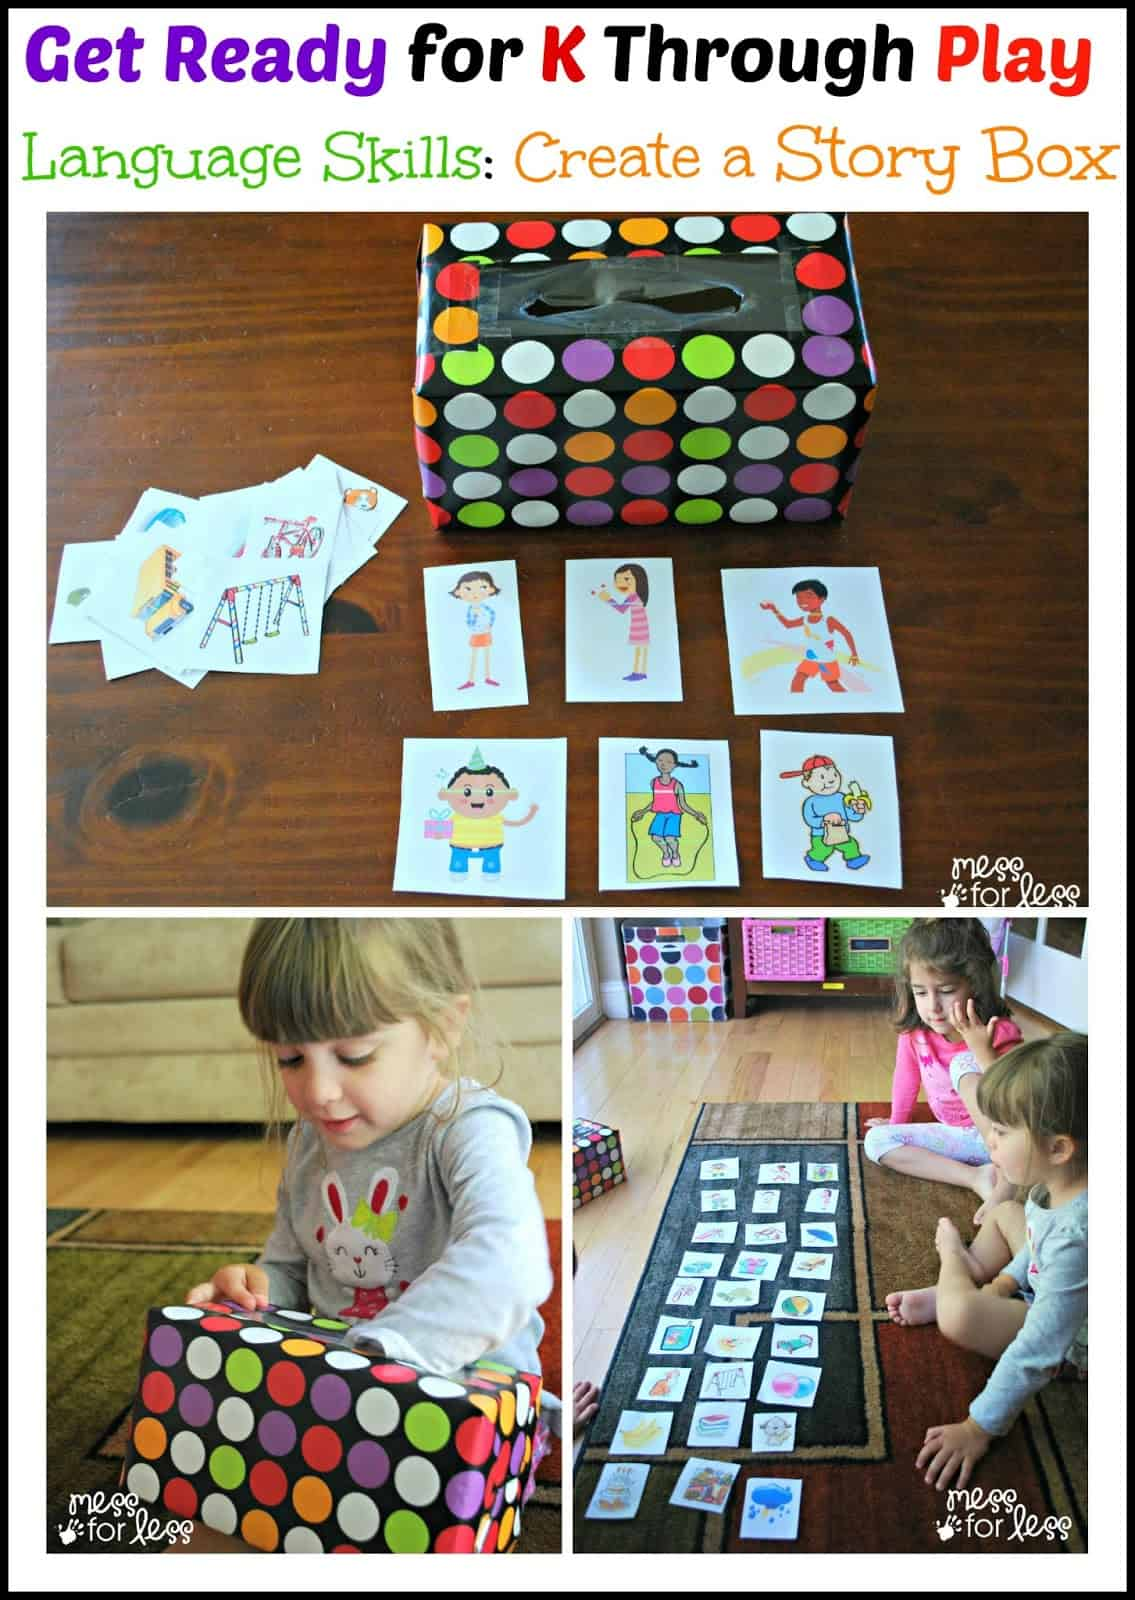 Kinder Garden: Story Box With Free Printables